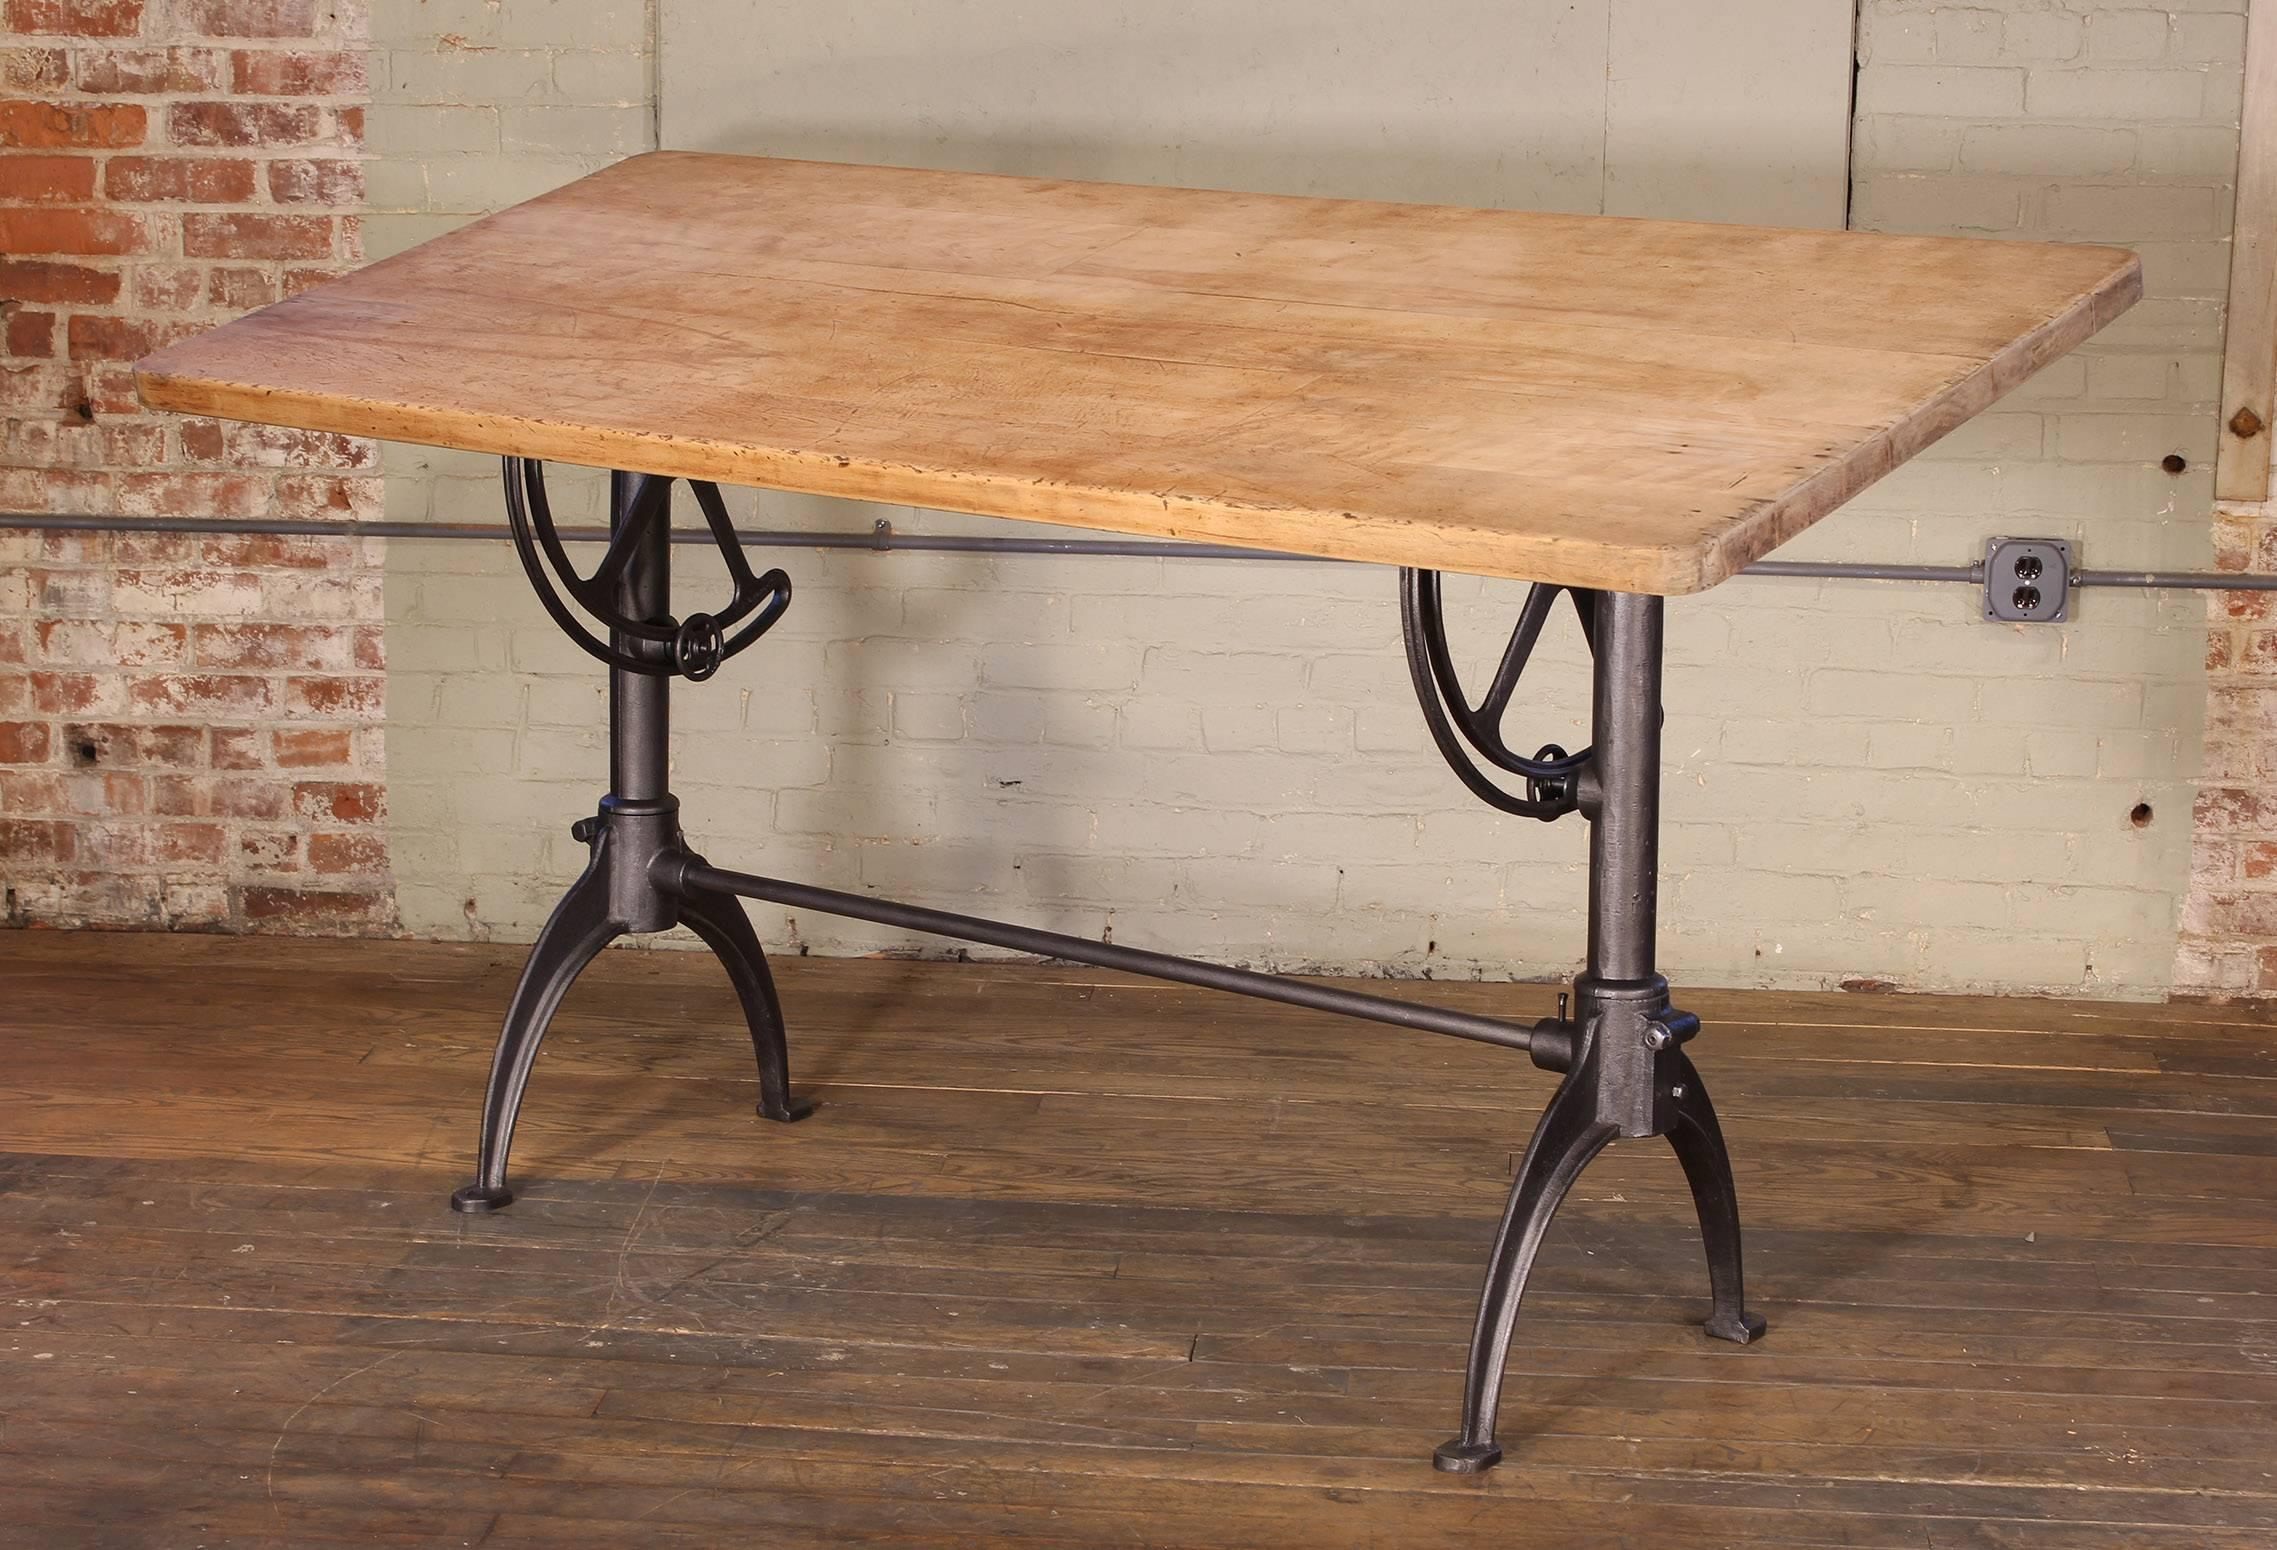 Ordinaire Vintage Tall Adjustable Drafting Table, Cast Iron And Maple. Top Can Be  Tilted To